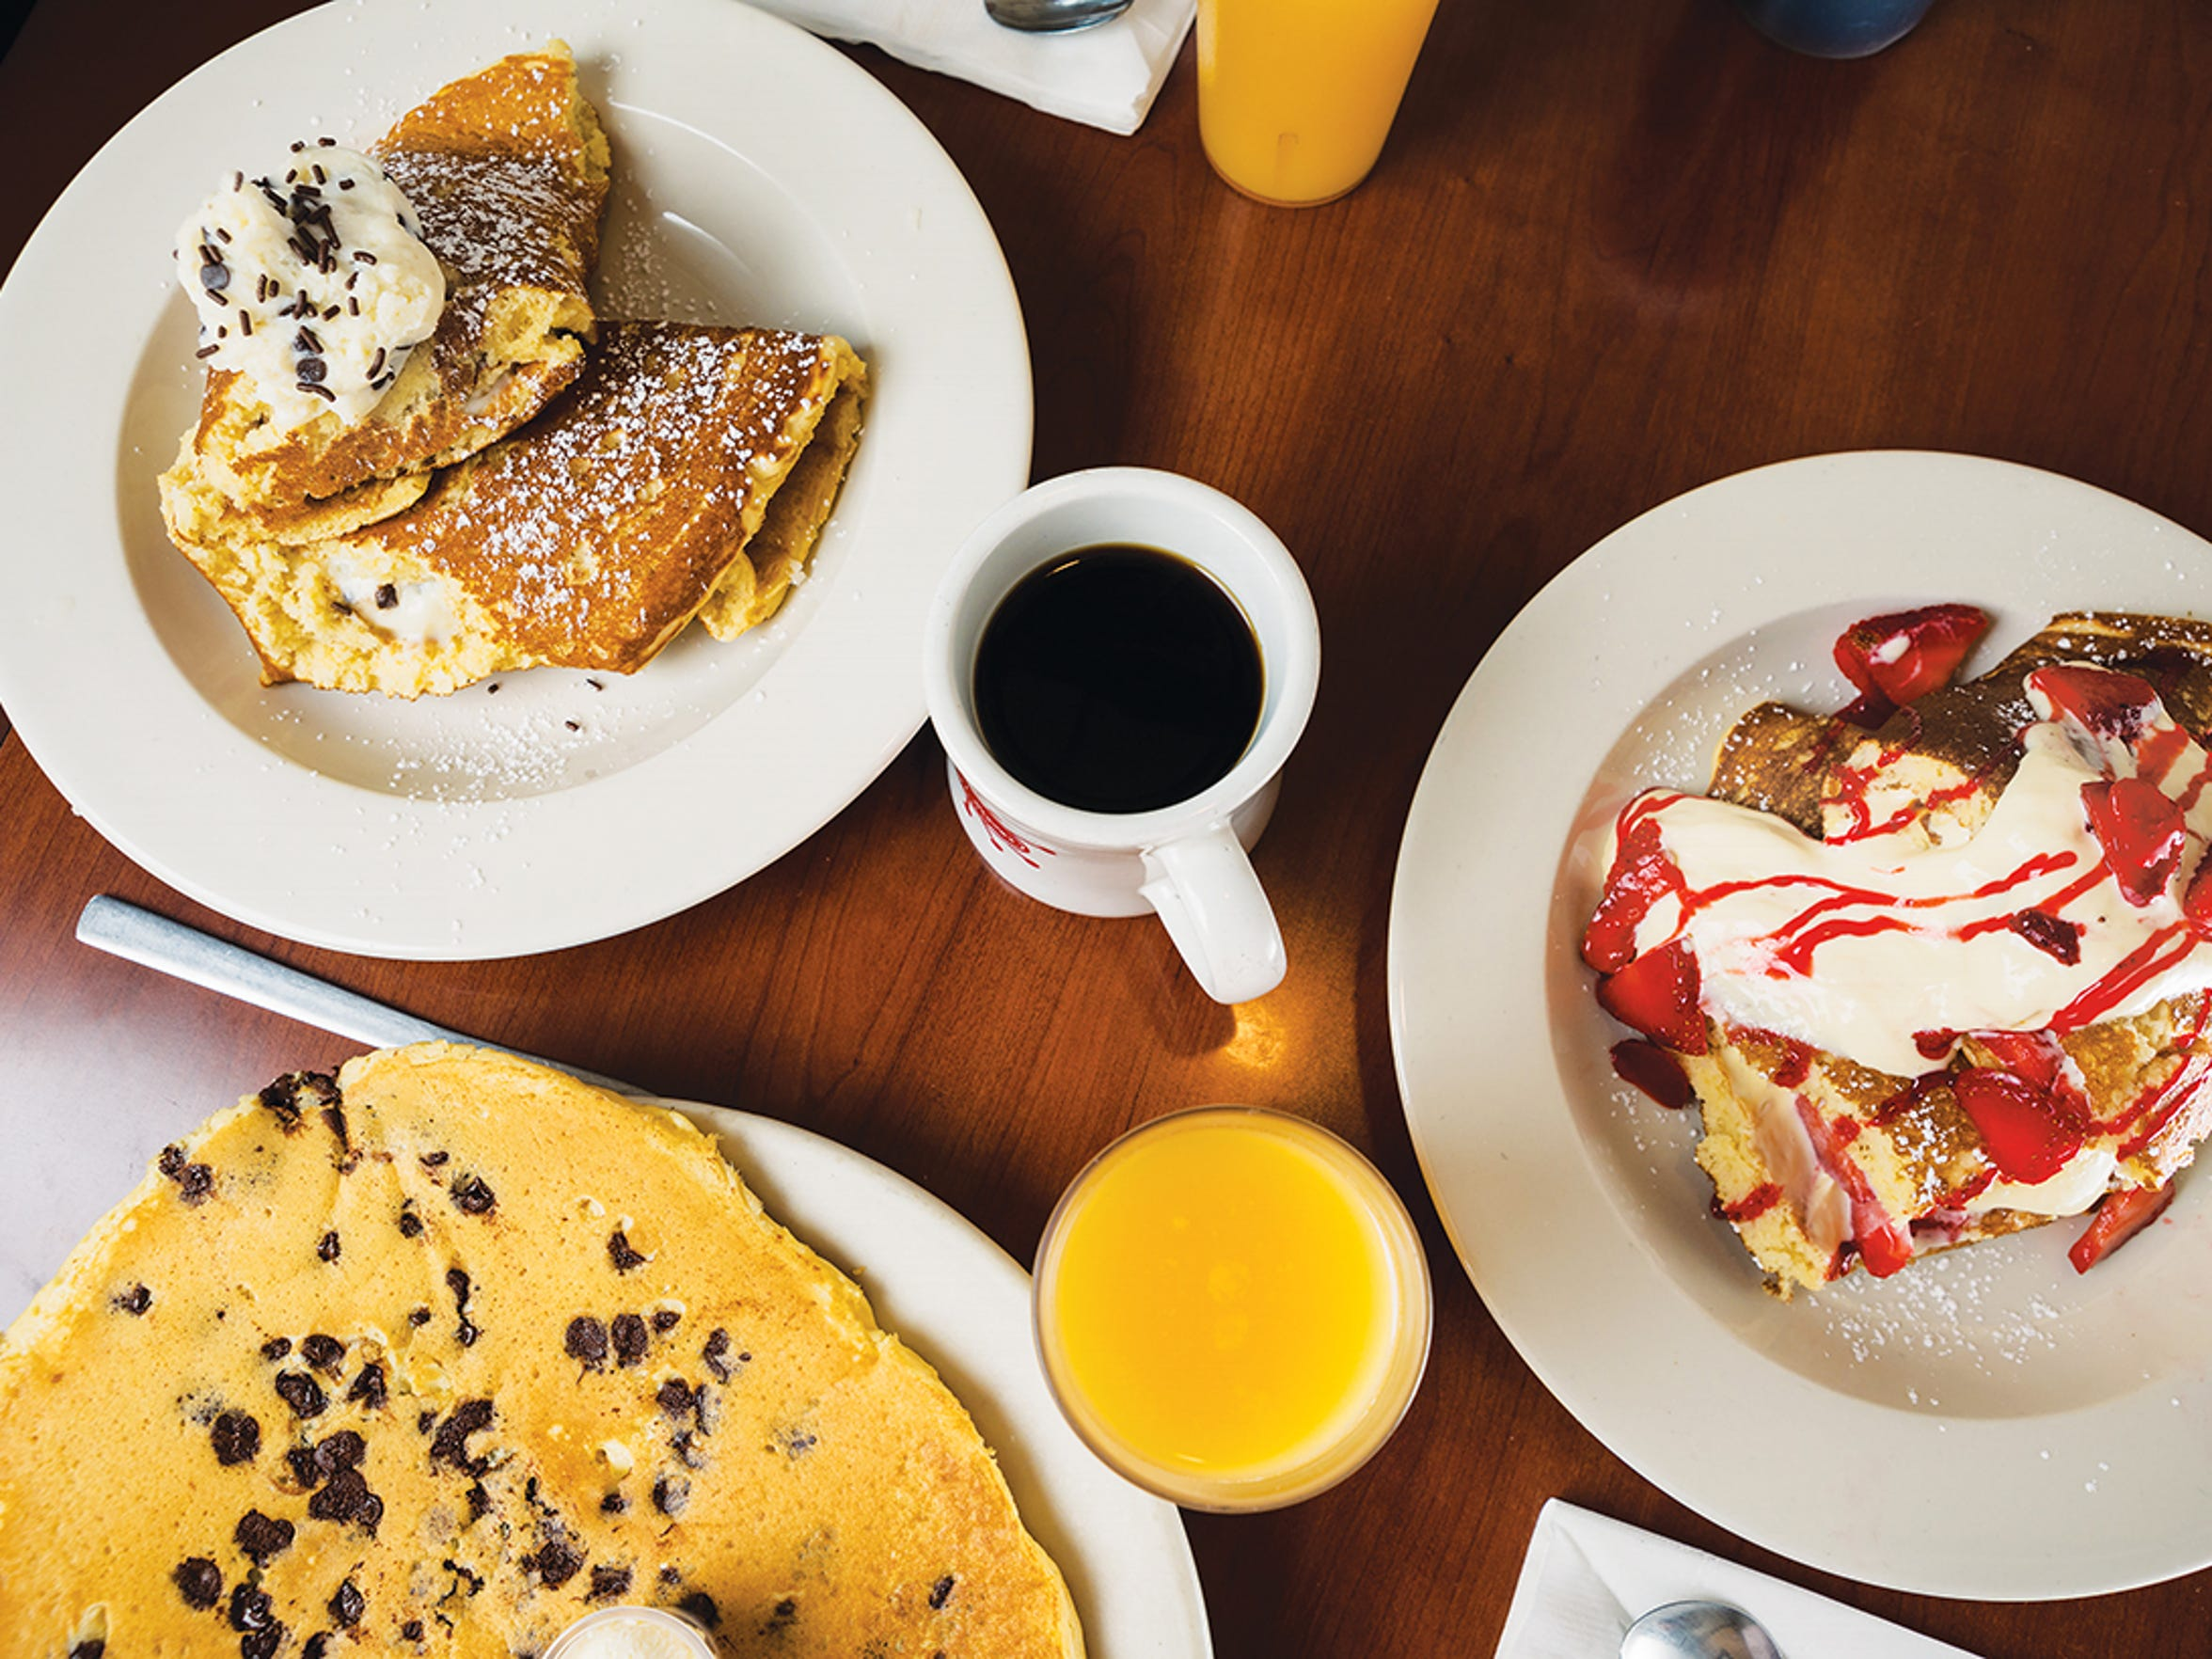 Cannoli pancakes,  strawberry cheesecake pancakes and chocolate chip pancakes at The Original Steve's Diner.